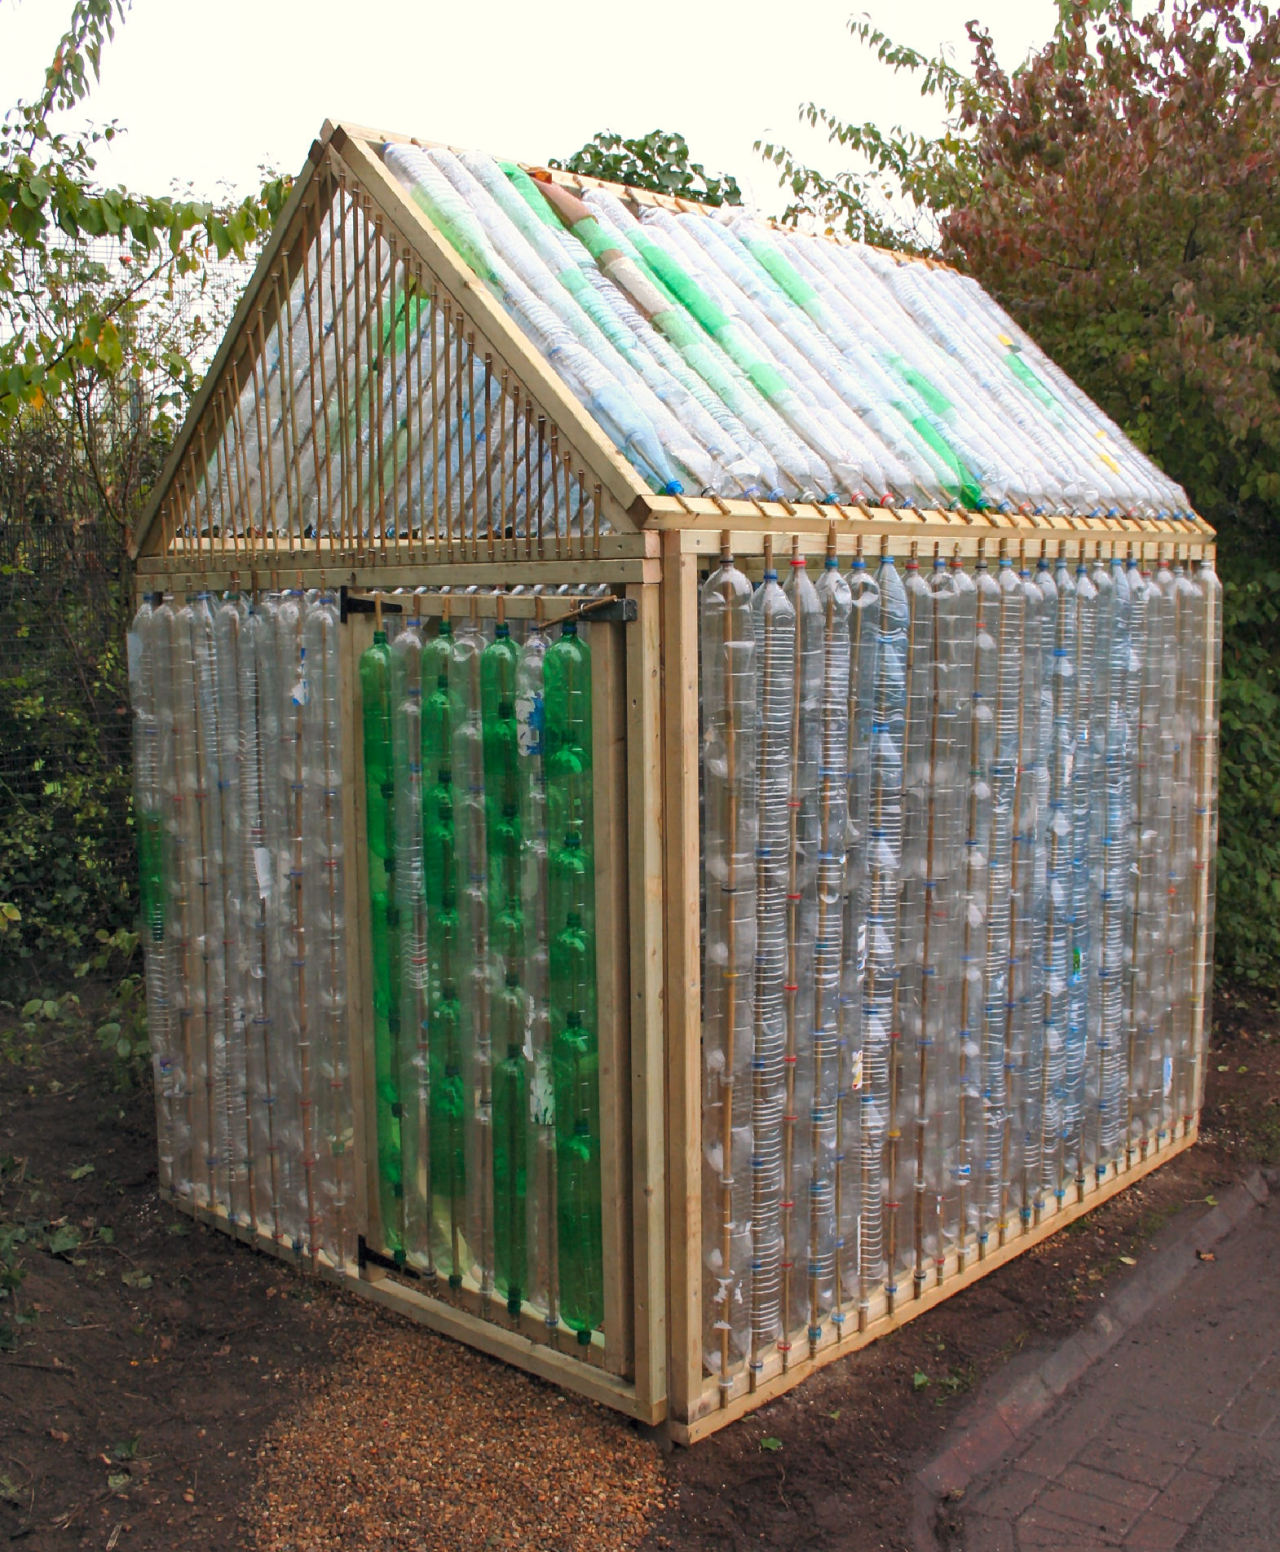 Kindertisch Selber Bauen Plastic Bottle Greenhouses Plastic Bottles Have